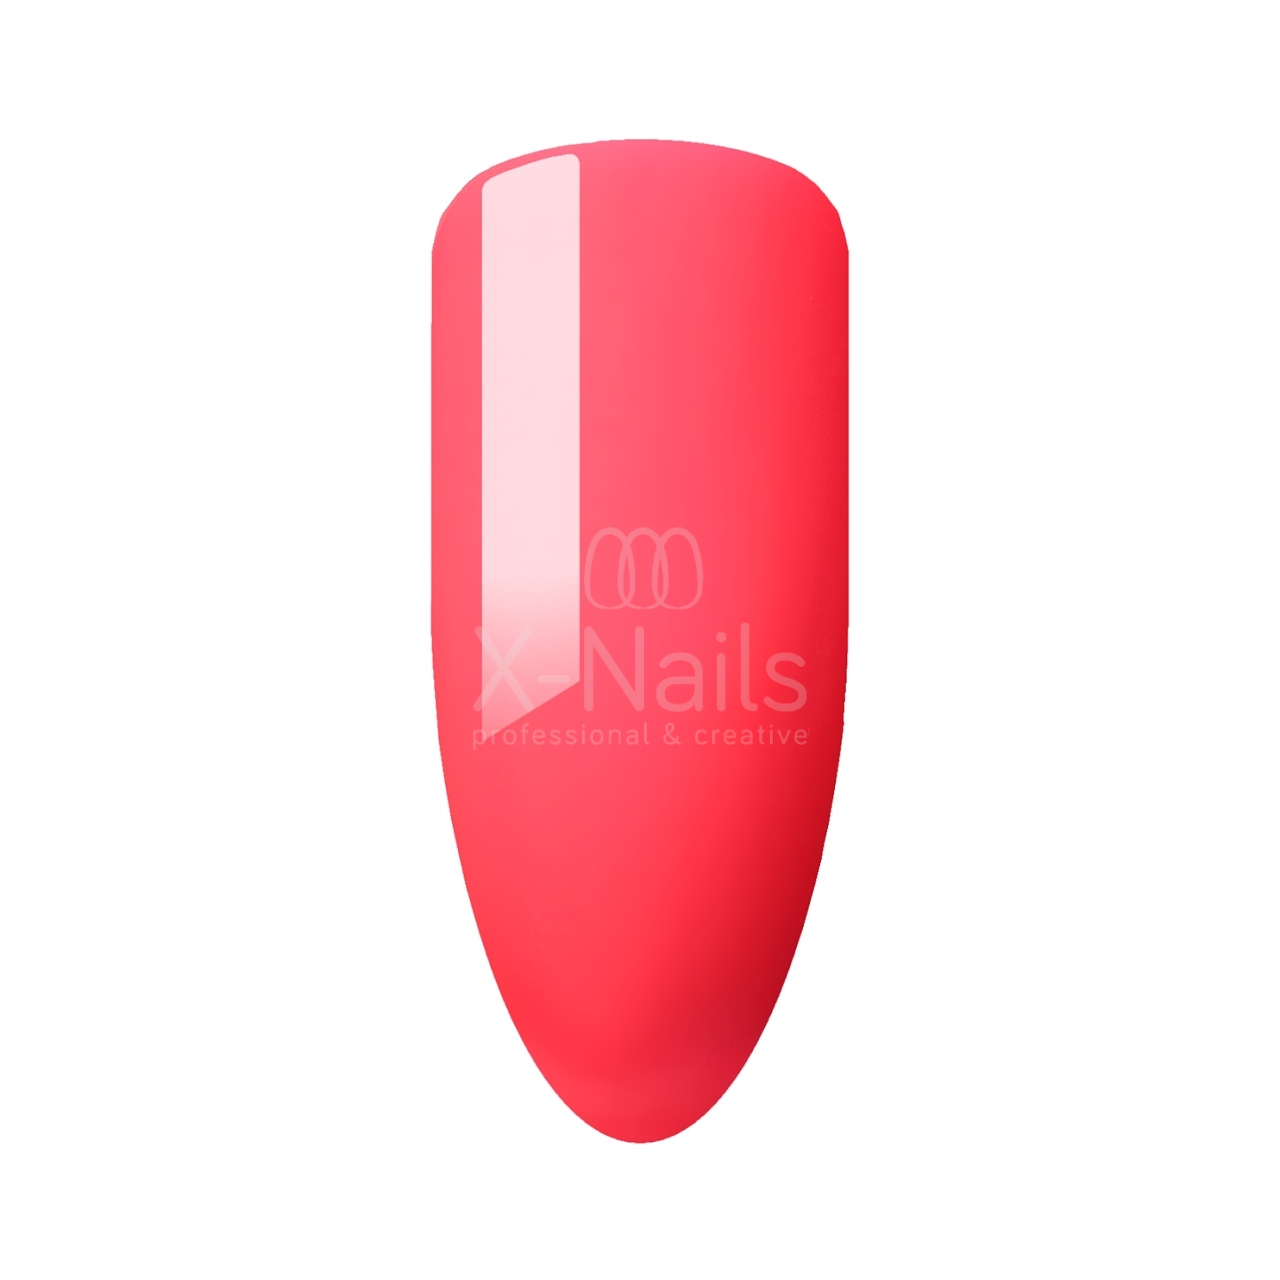 X-NAILS gel lak Amazing Line, 5 ml - NEON CORAL SUNSET